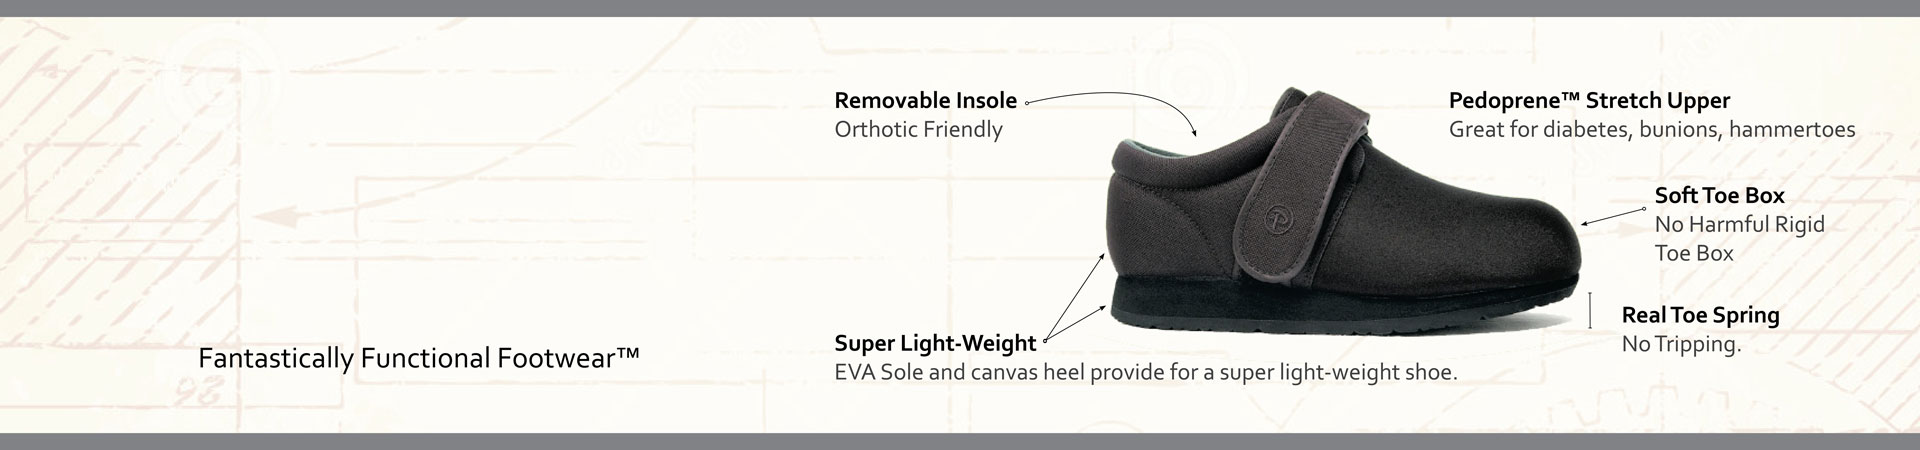 Pedors Classic Black Features And Benefits